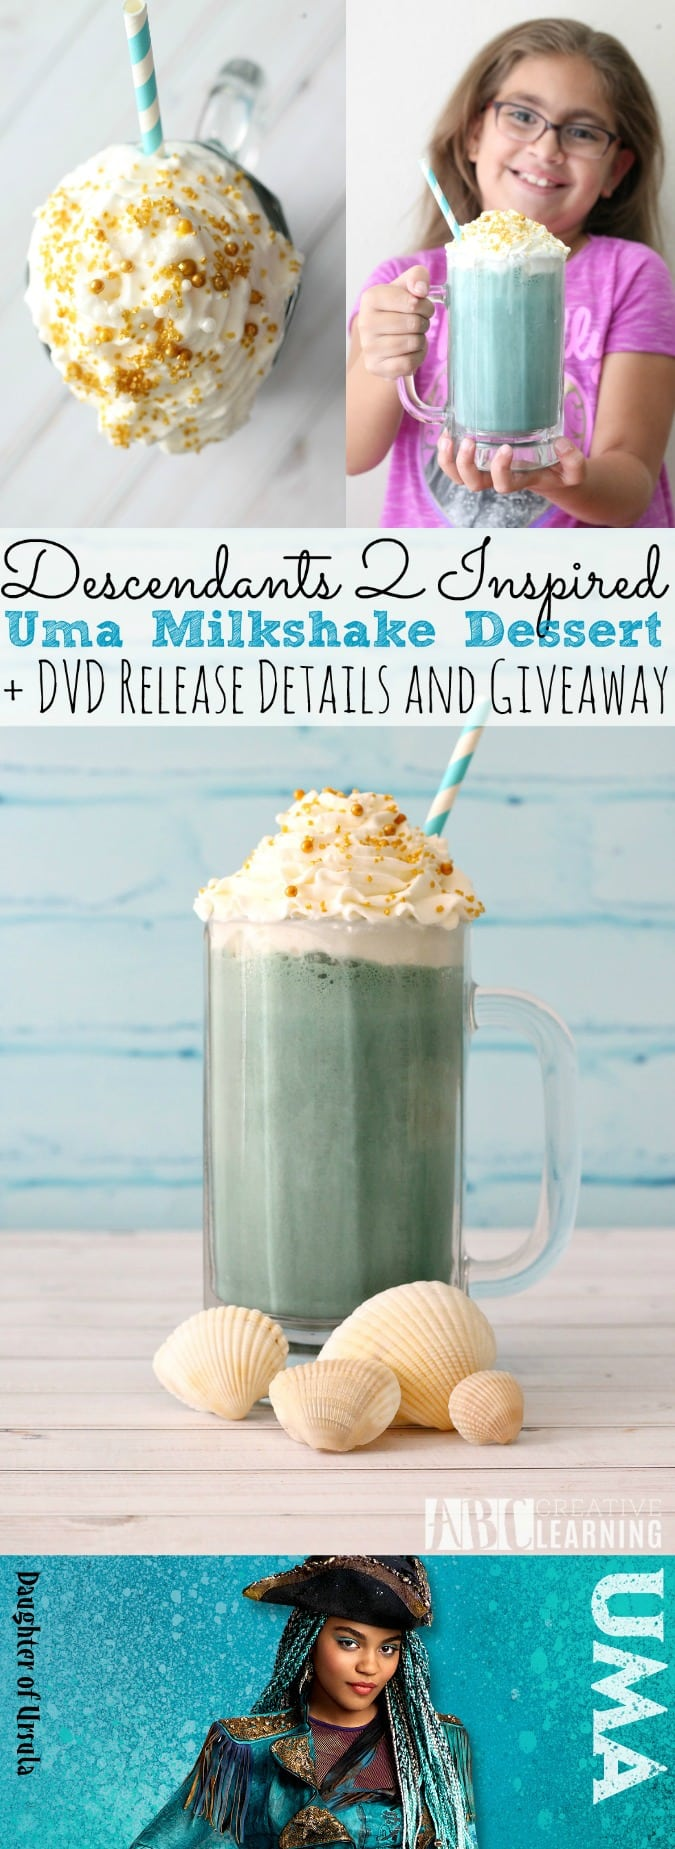 Descendants 2 Uma Milksahke Dessert Recipe